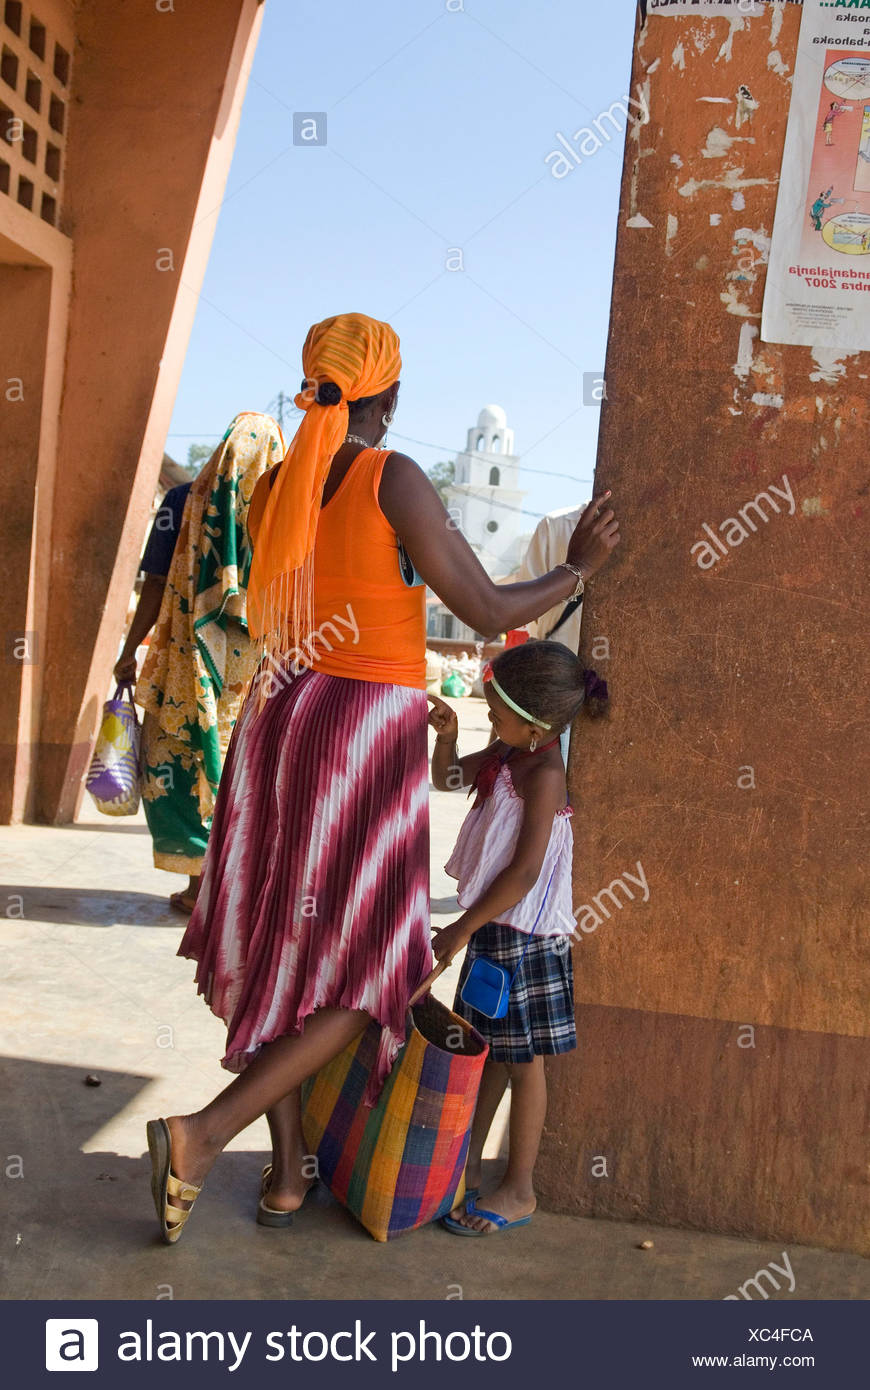 market square, Hell-Ville Andoany, Nosy Be island, Republic of Madagascar, Indian Ocean - Stock Image